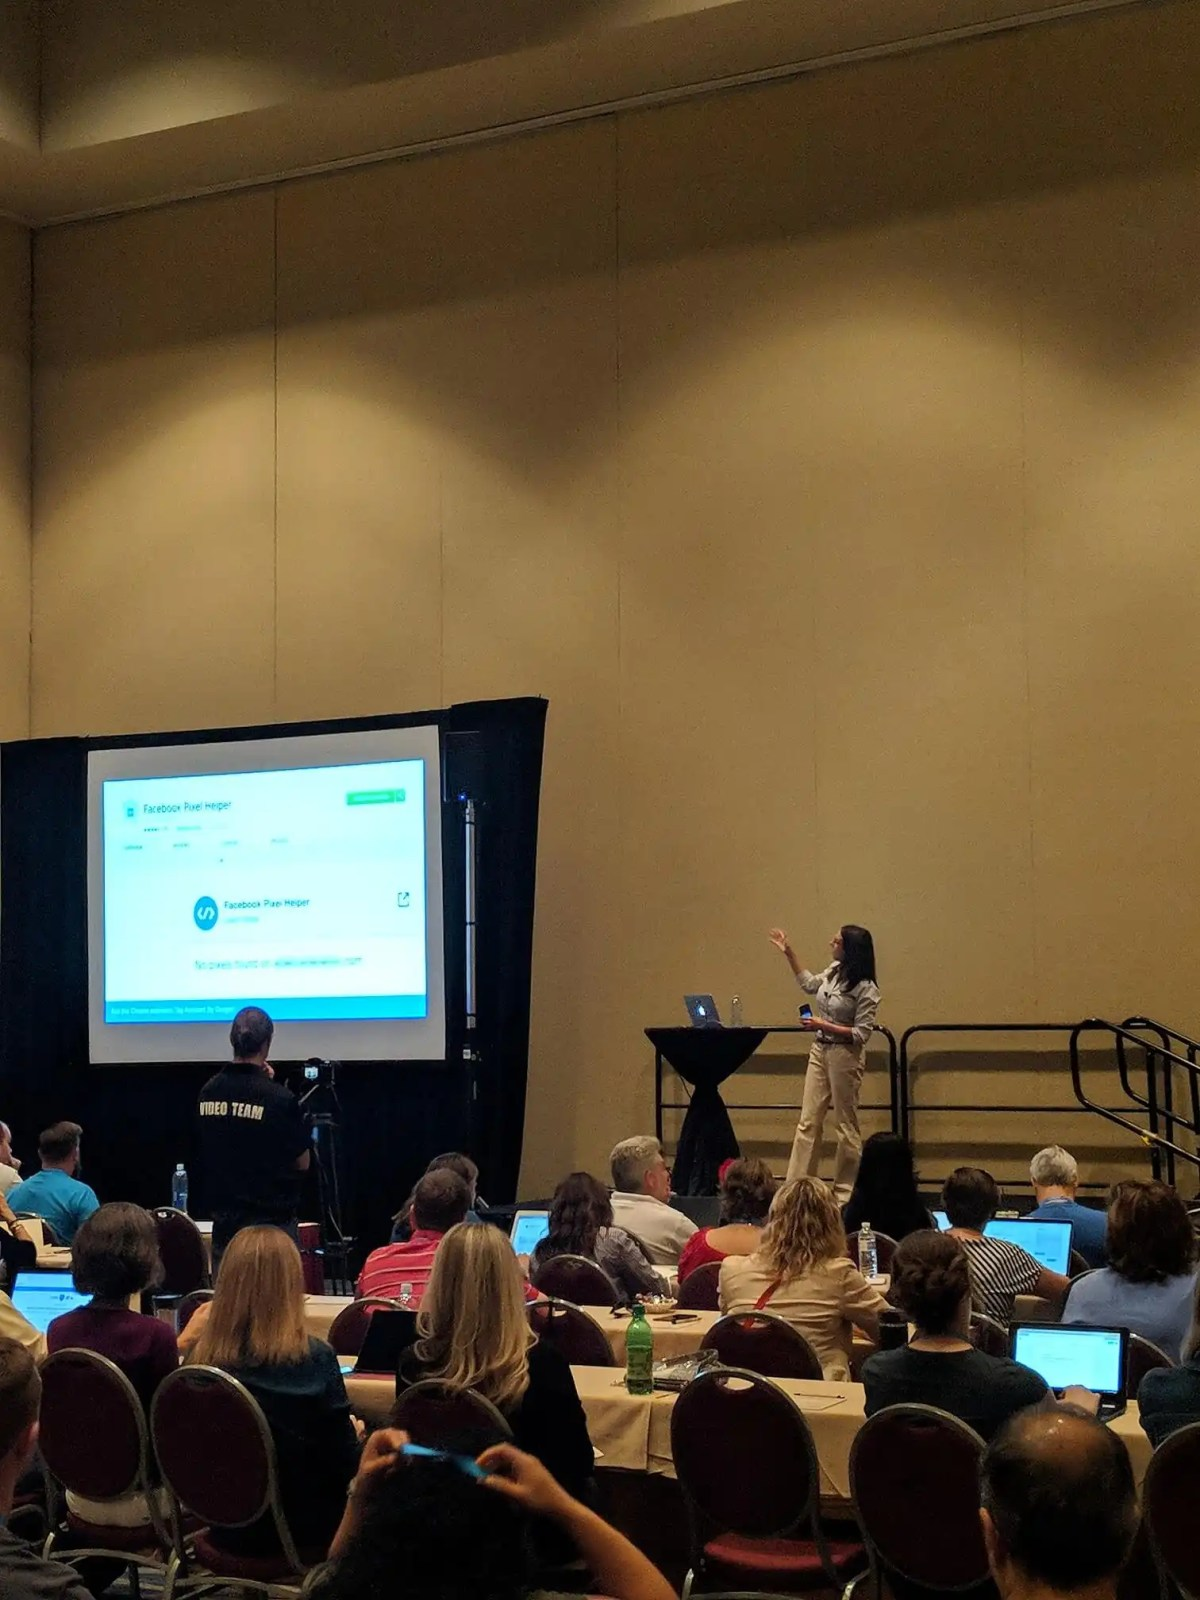 Claudia Pennington of SEO Audit Guide giving a presentation about Google Analytics at FinCon18.